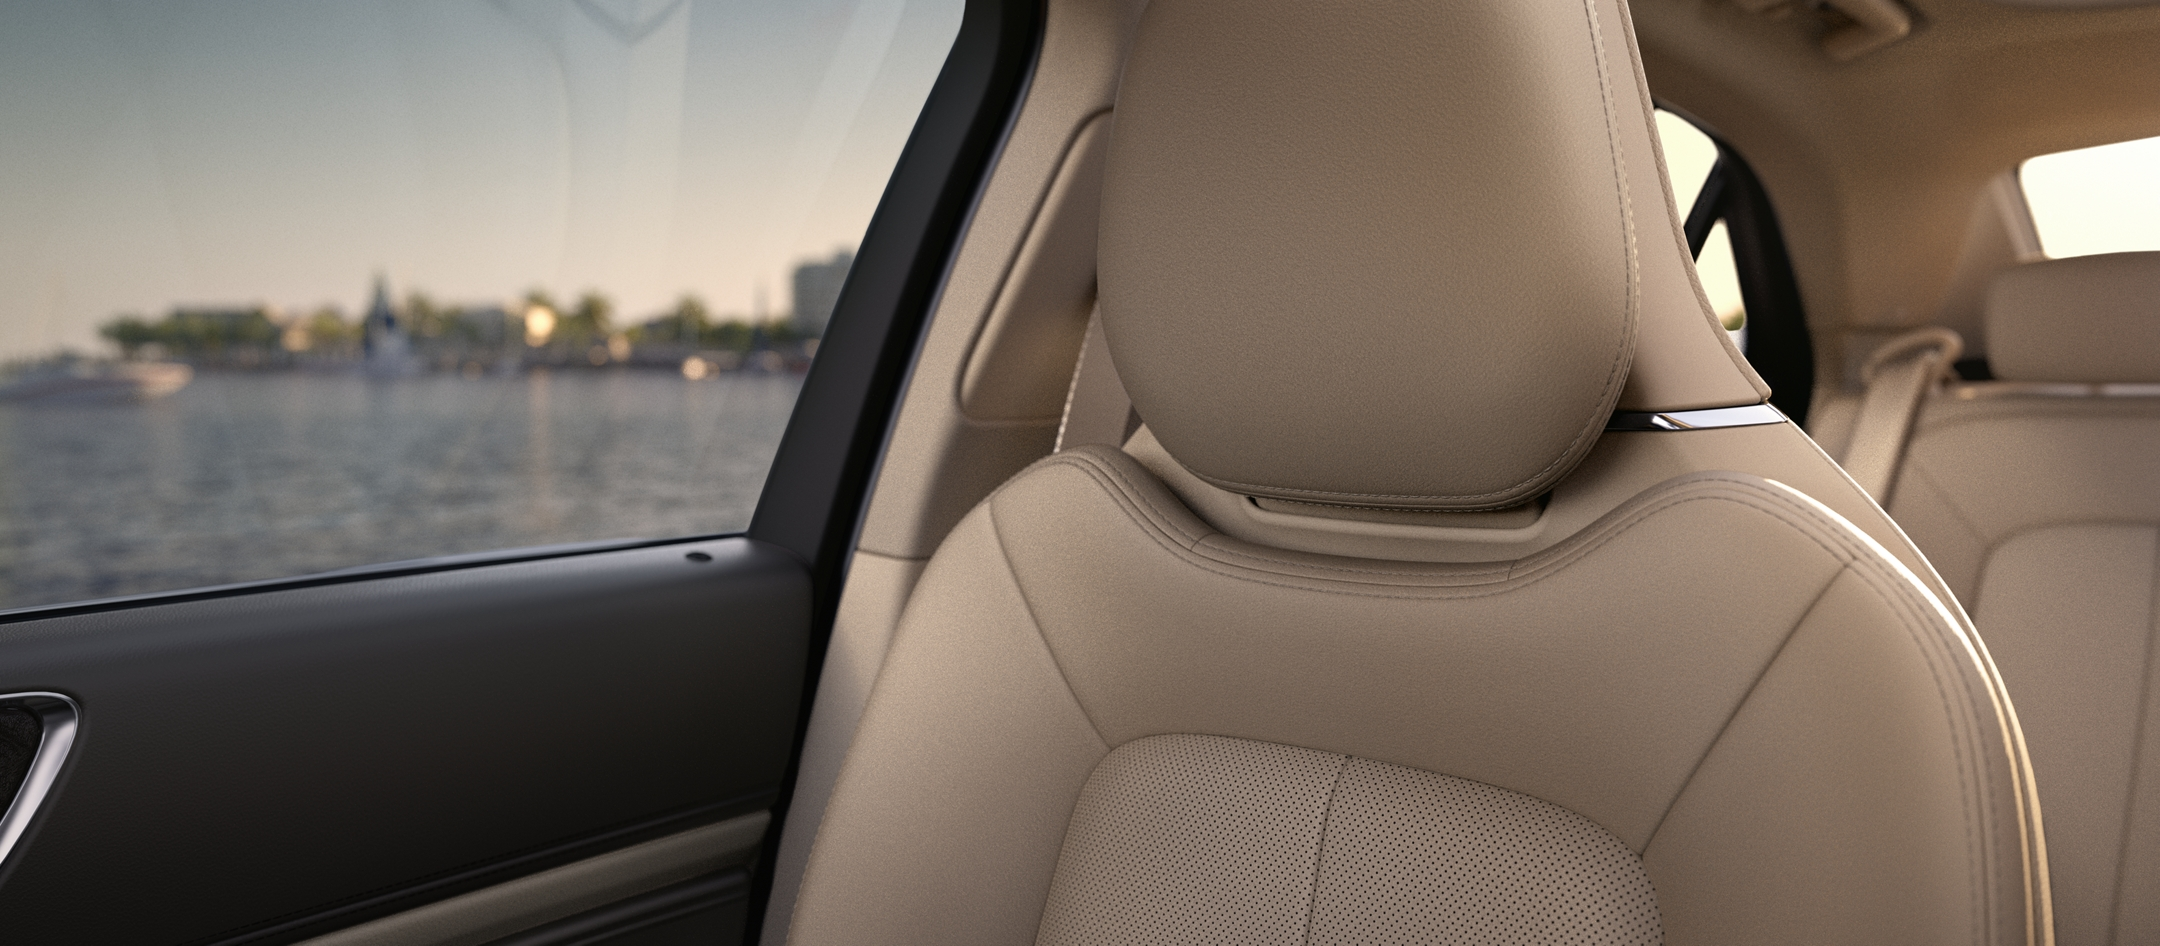 The front passenger seat demonstrates the inviting nature of available leather